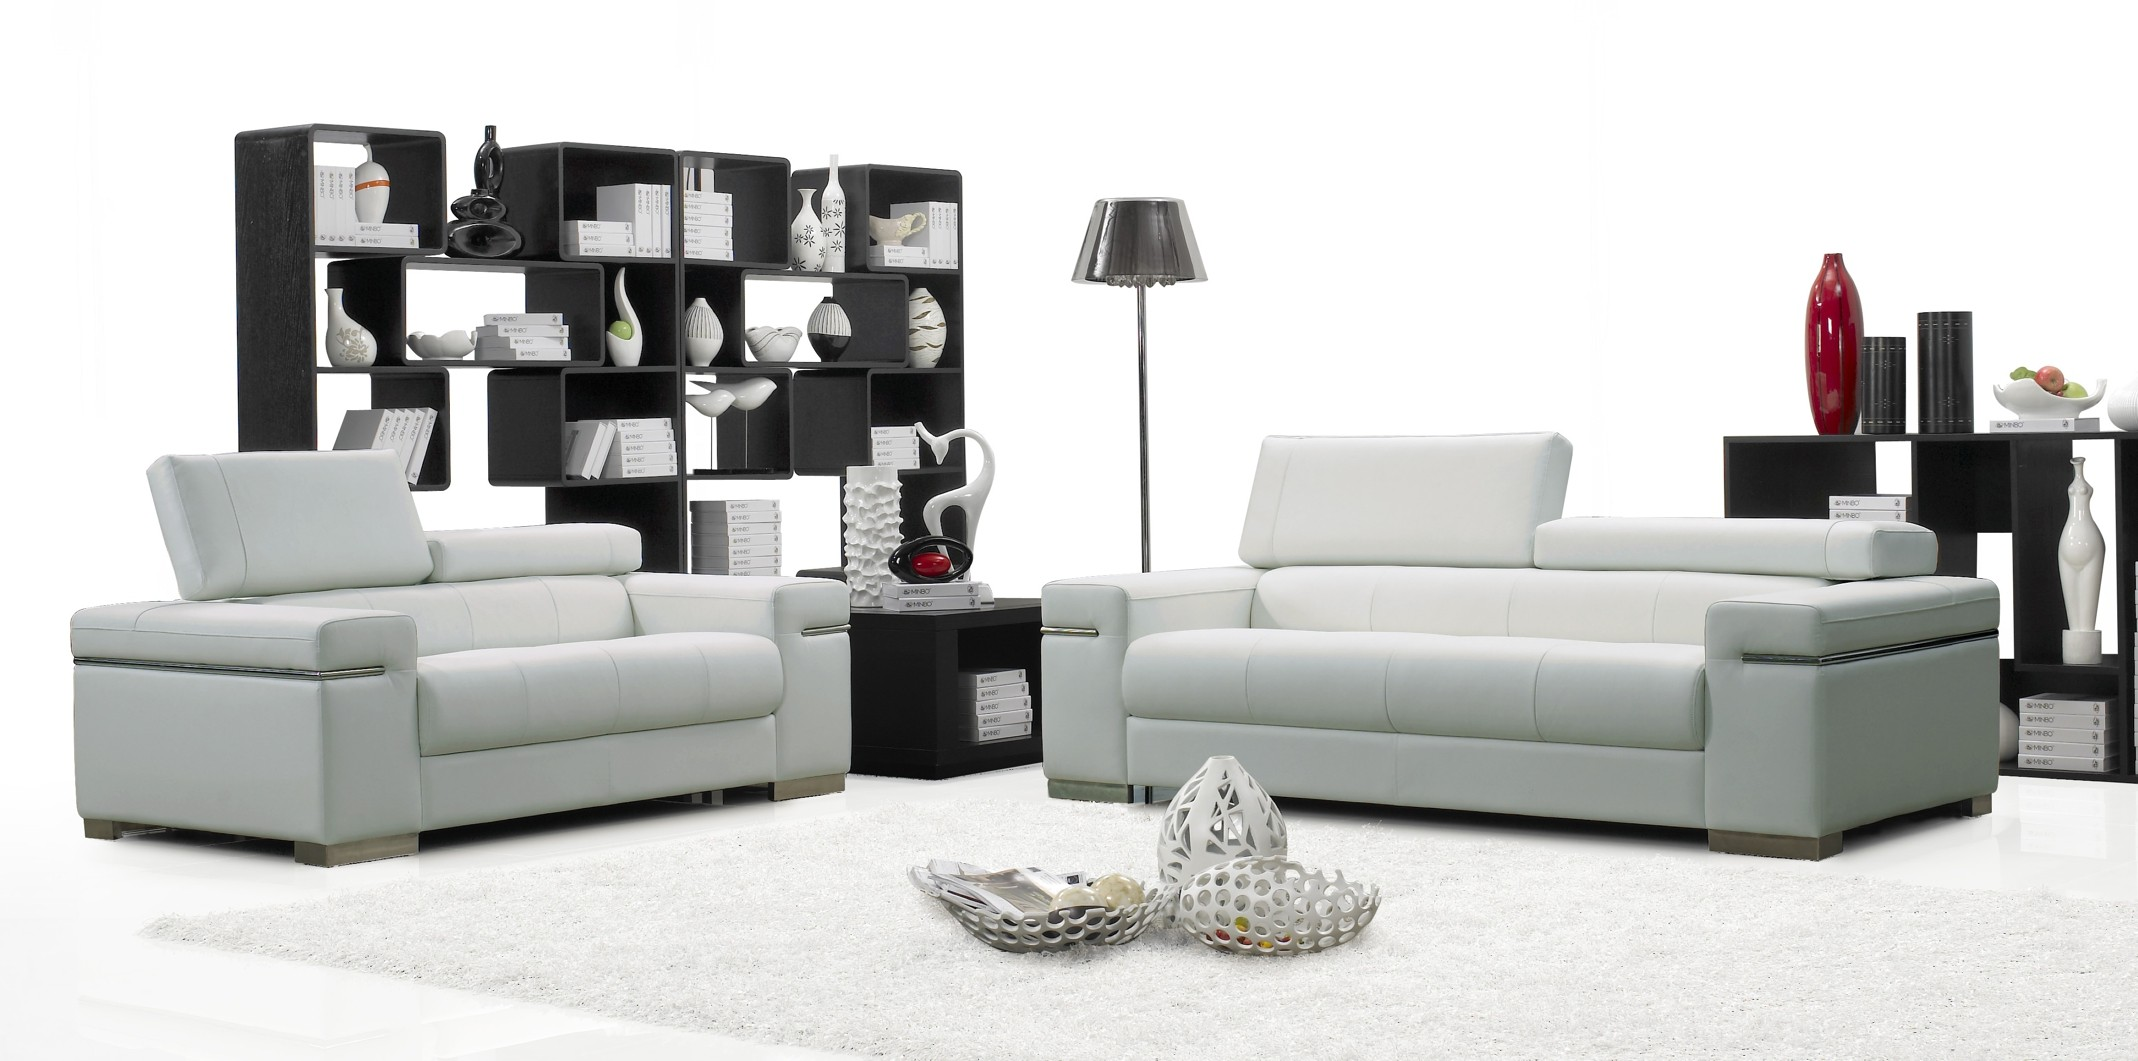 True modern furniture online homesfeed for Modern home furniture